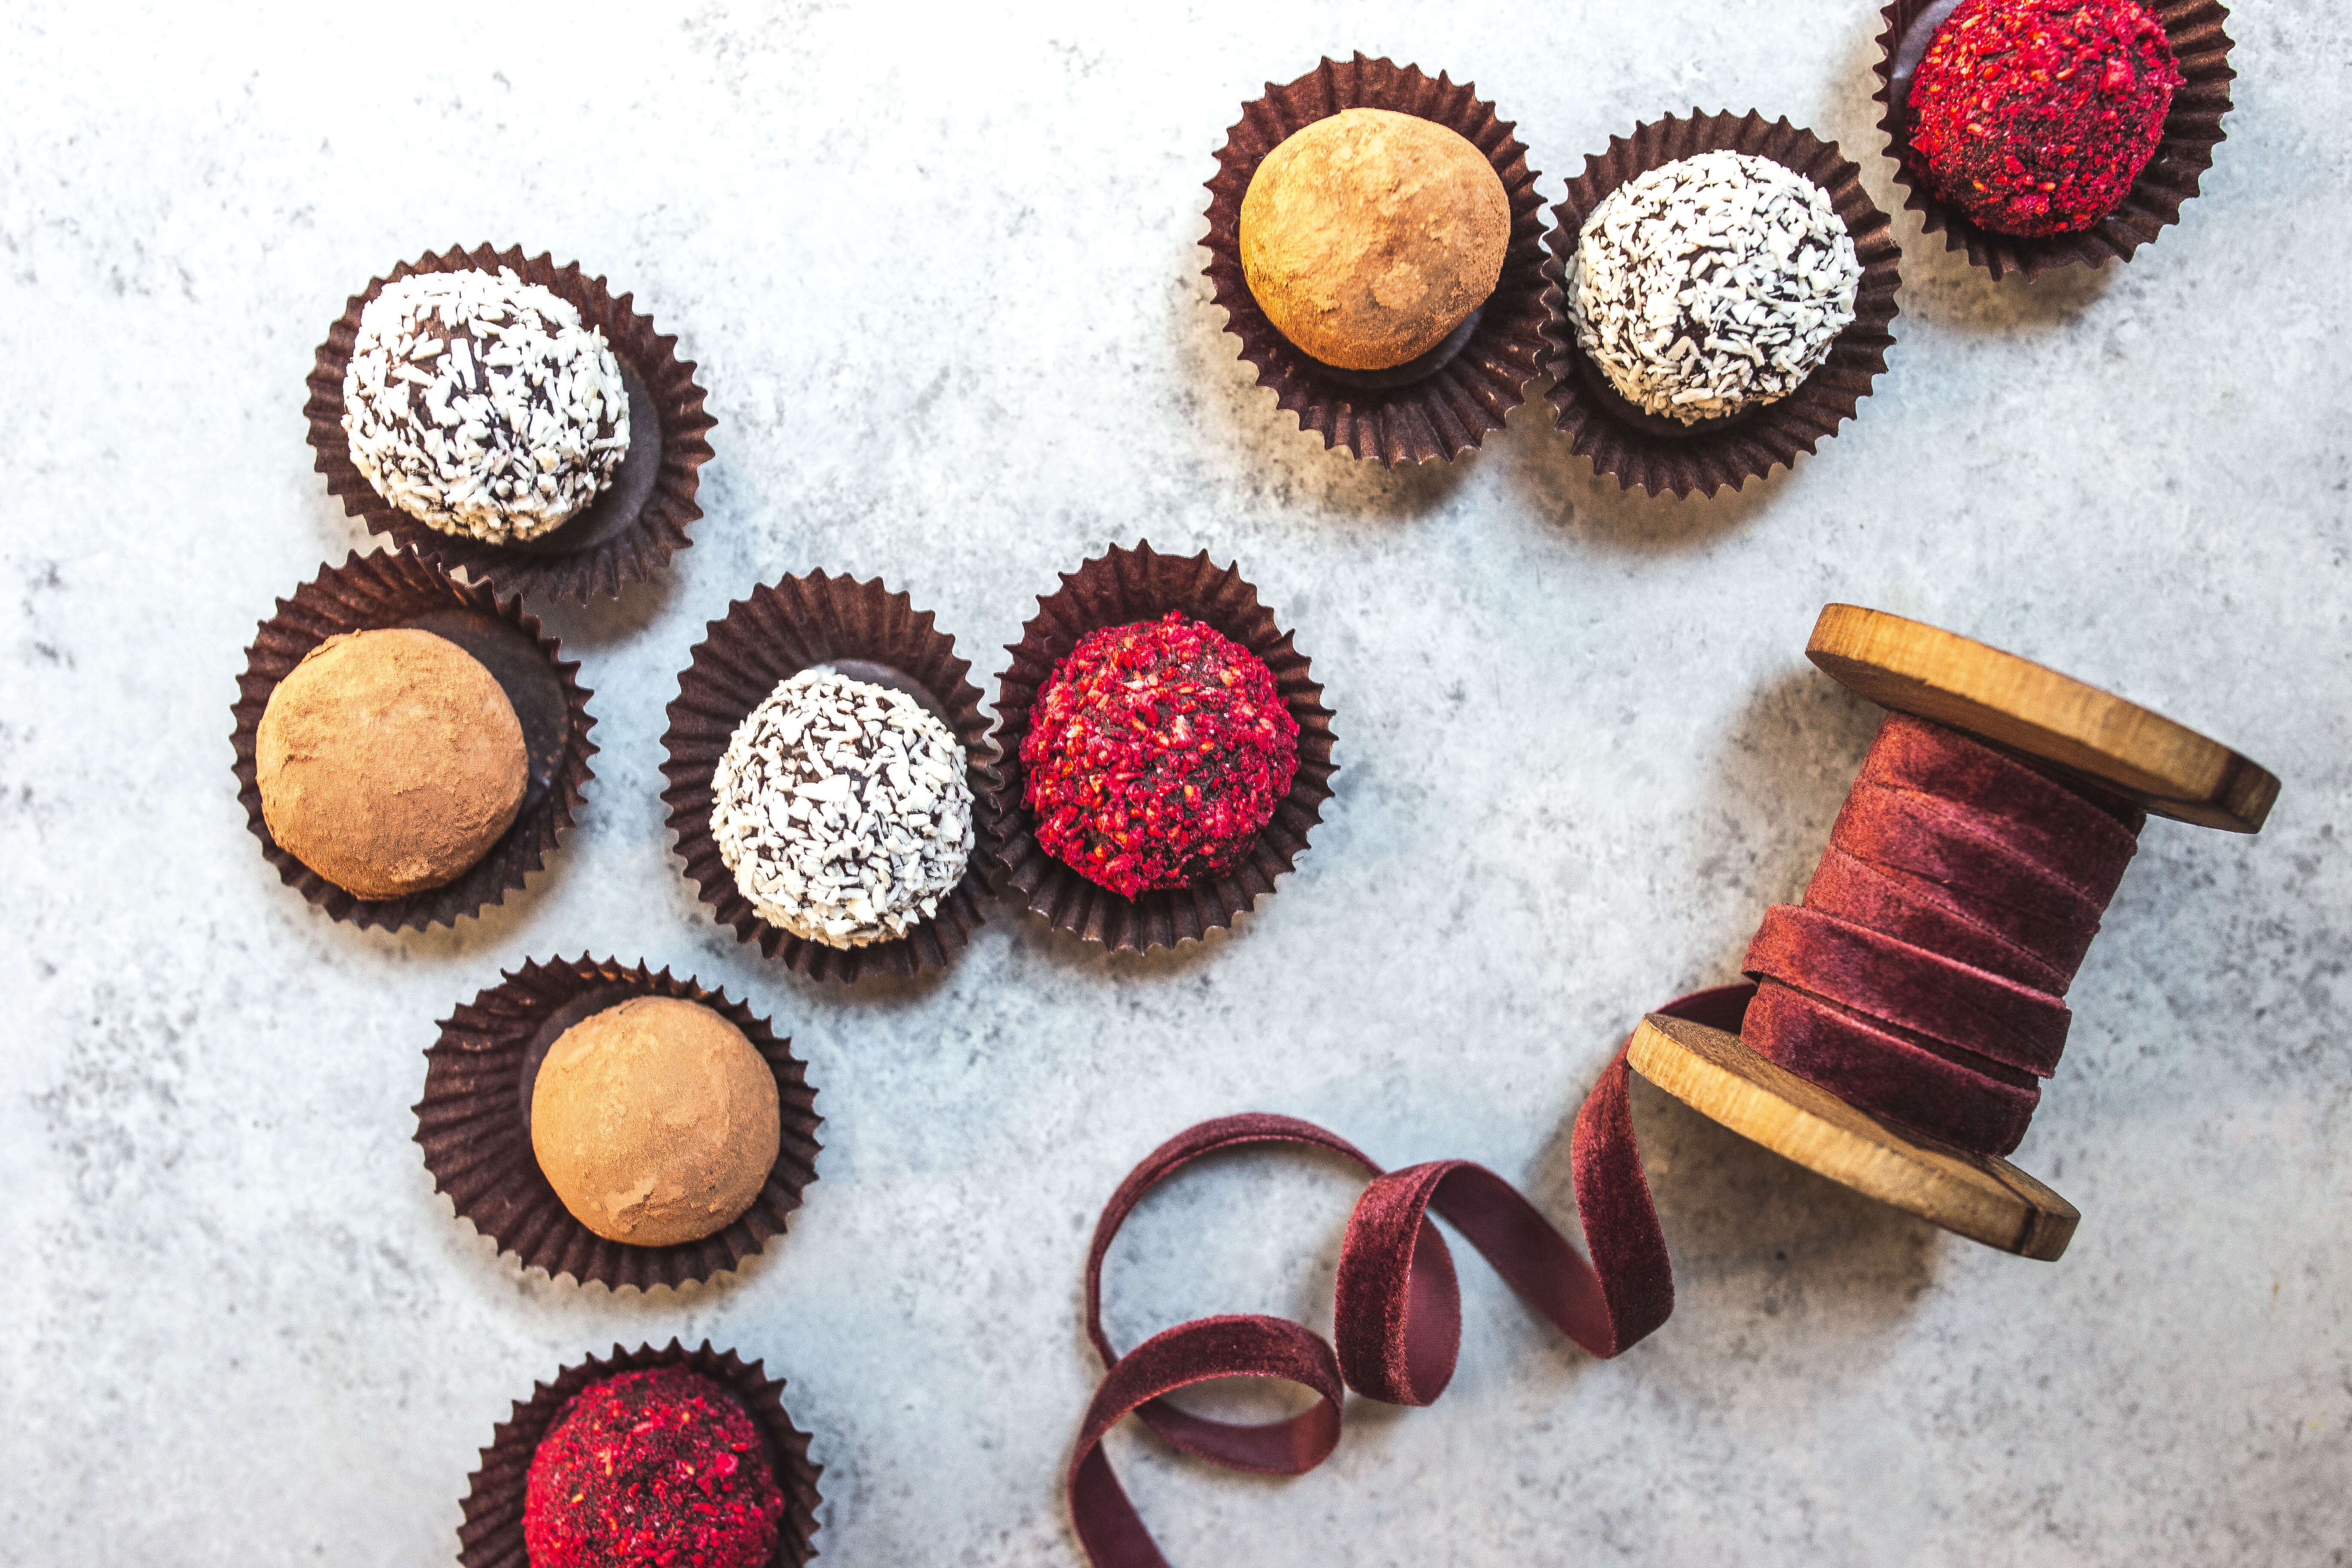 dairy-free chocolate truffles via Food by Mars